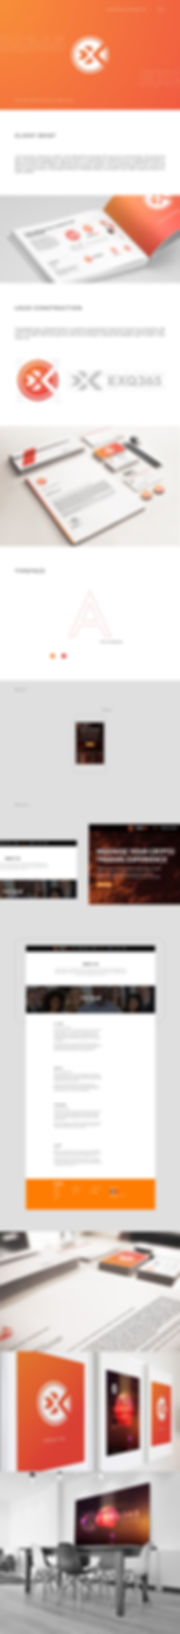 EXQ365 mockup_page-0001.jpg